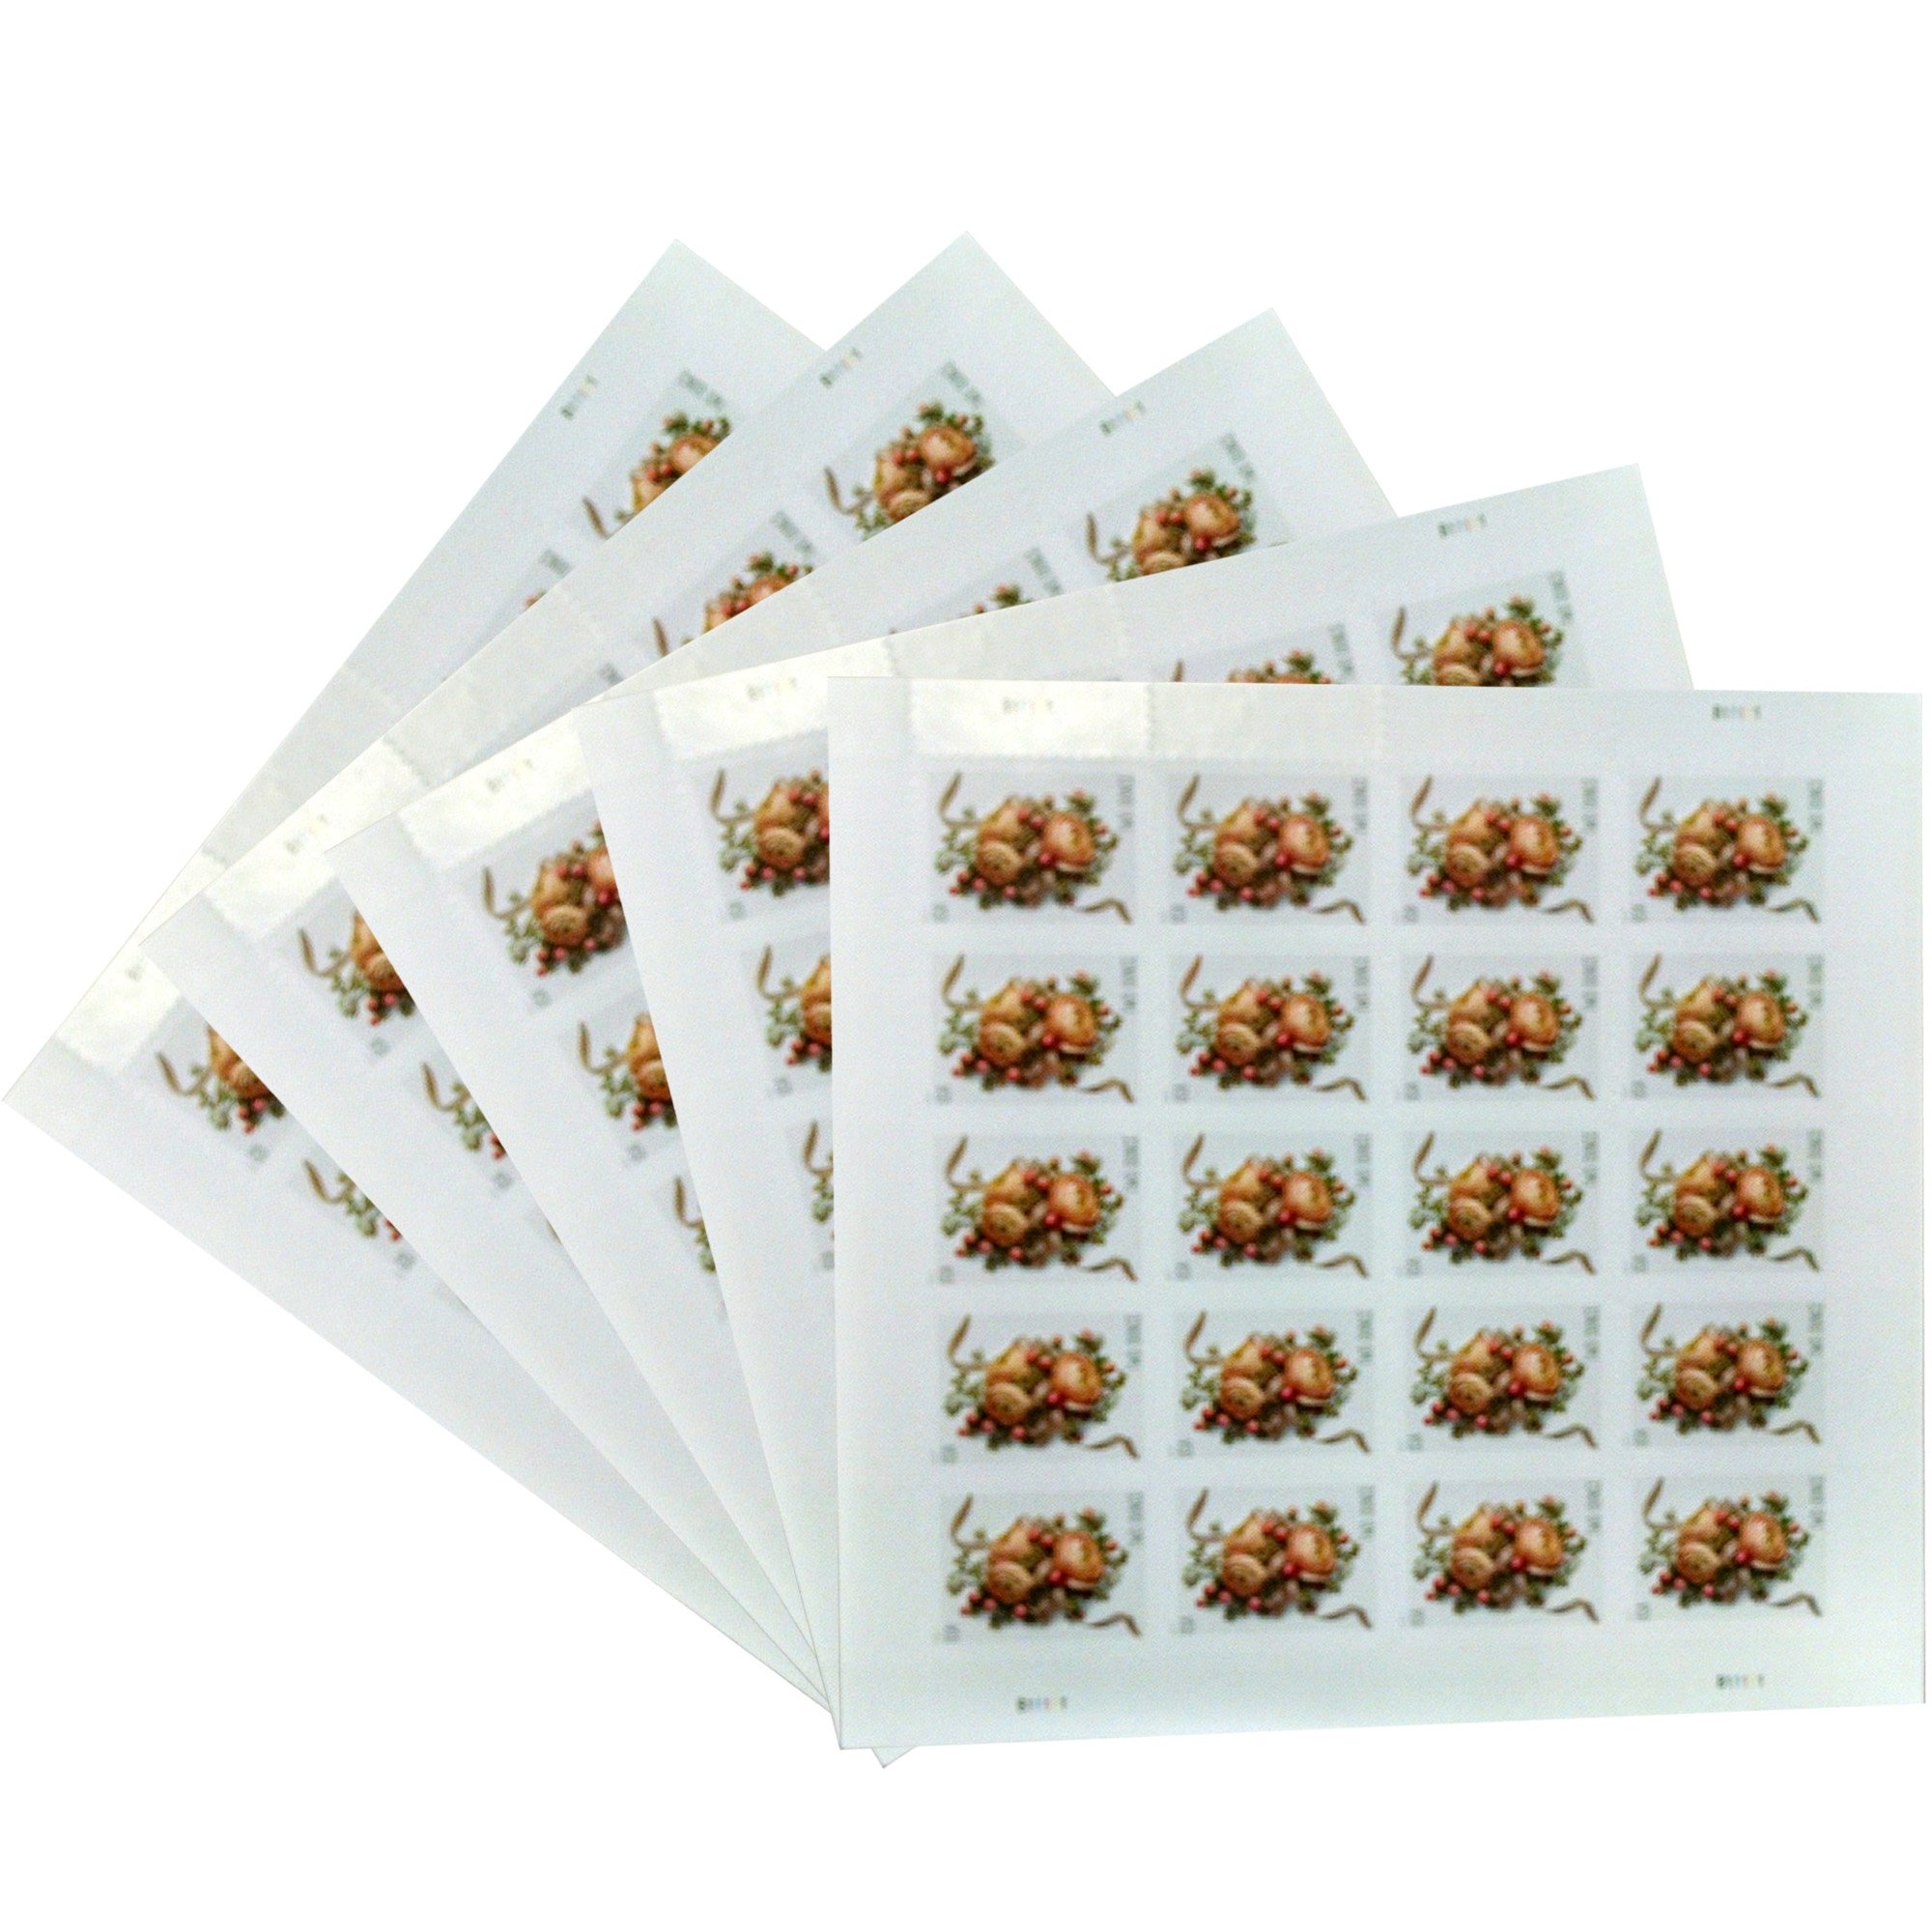 Celebration Corsage Sheet of 20 USPS Forever First Class Two Ounce Stamps Wedding Mother's Day Proms (5 Sheets of 20 Stamps) by USPS